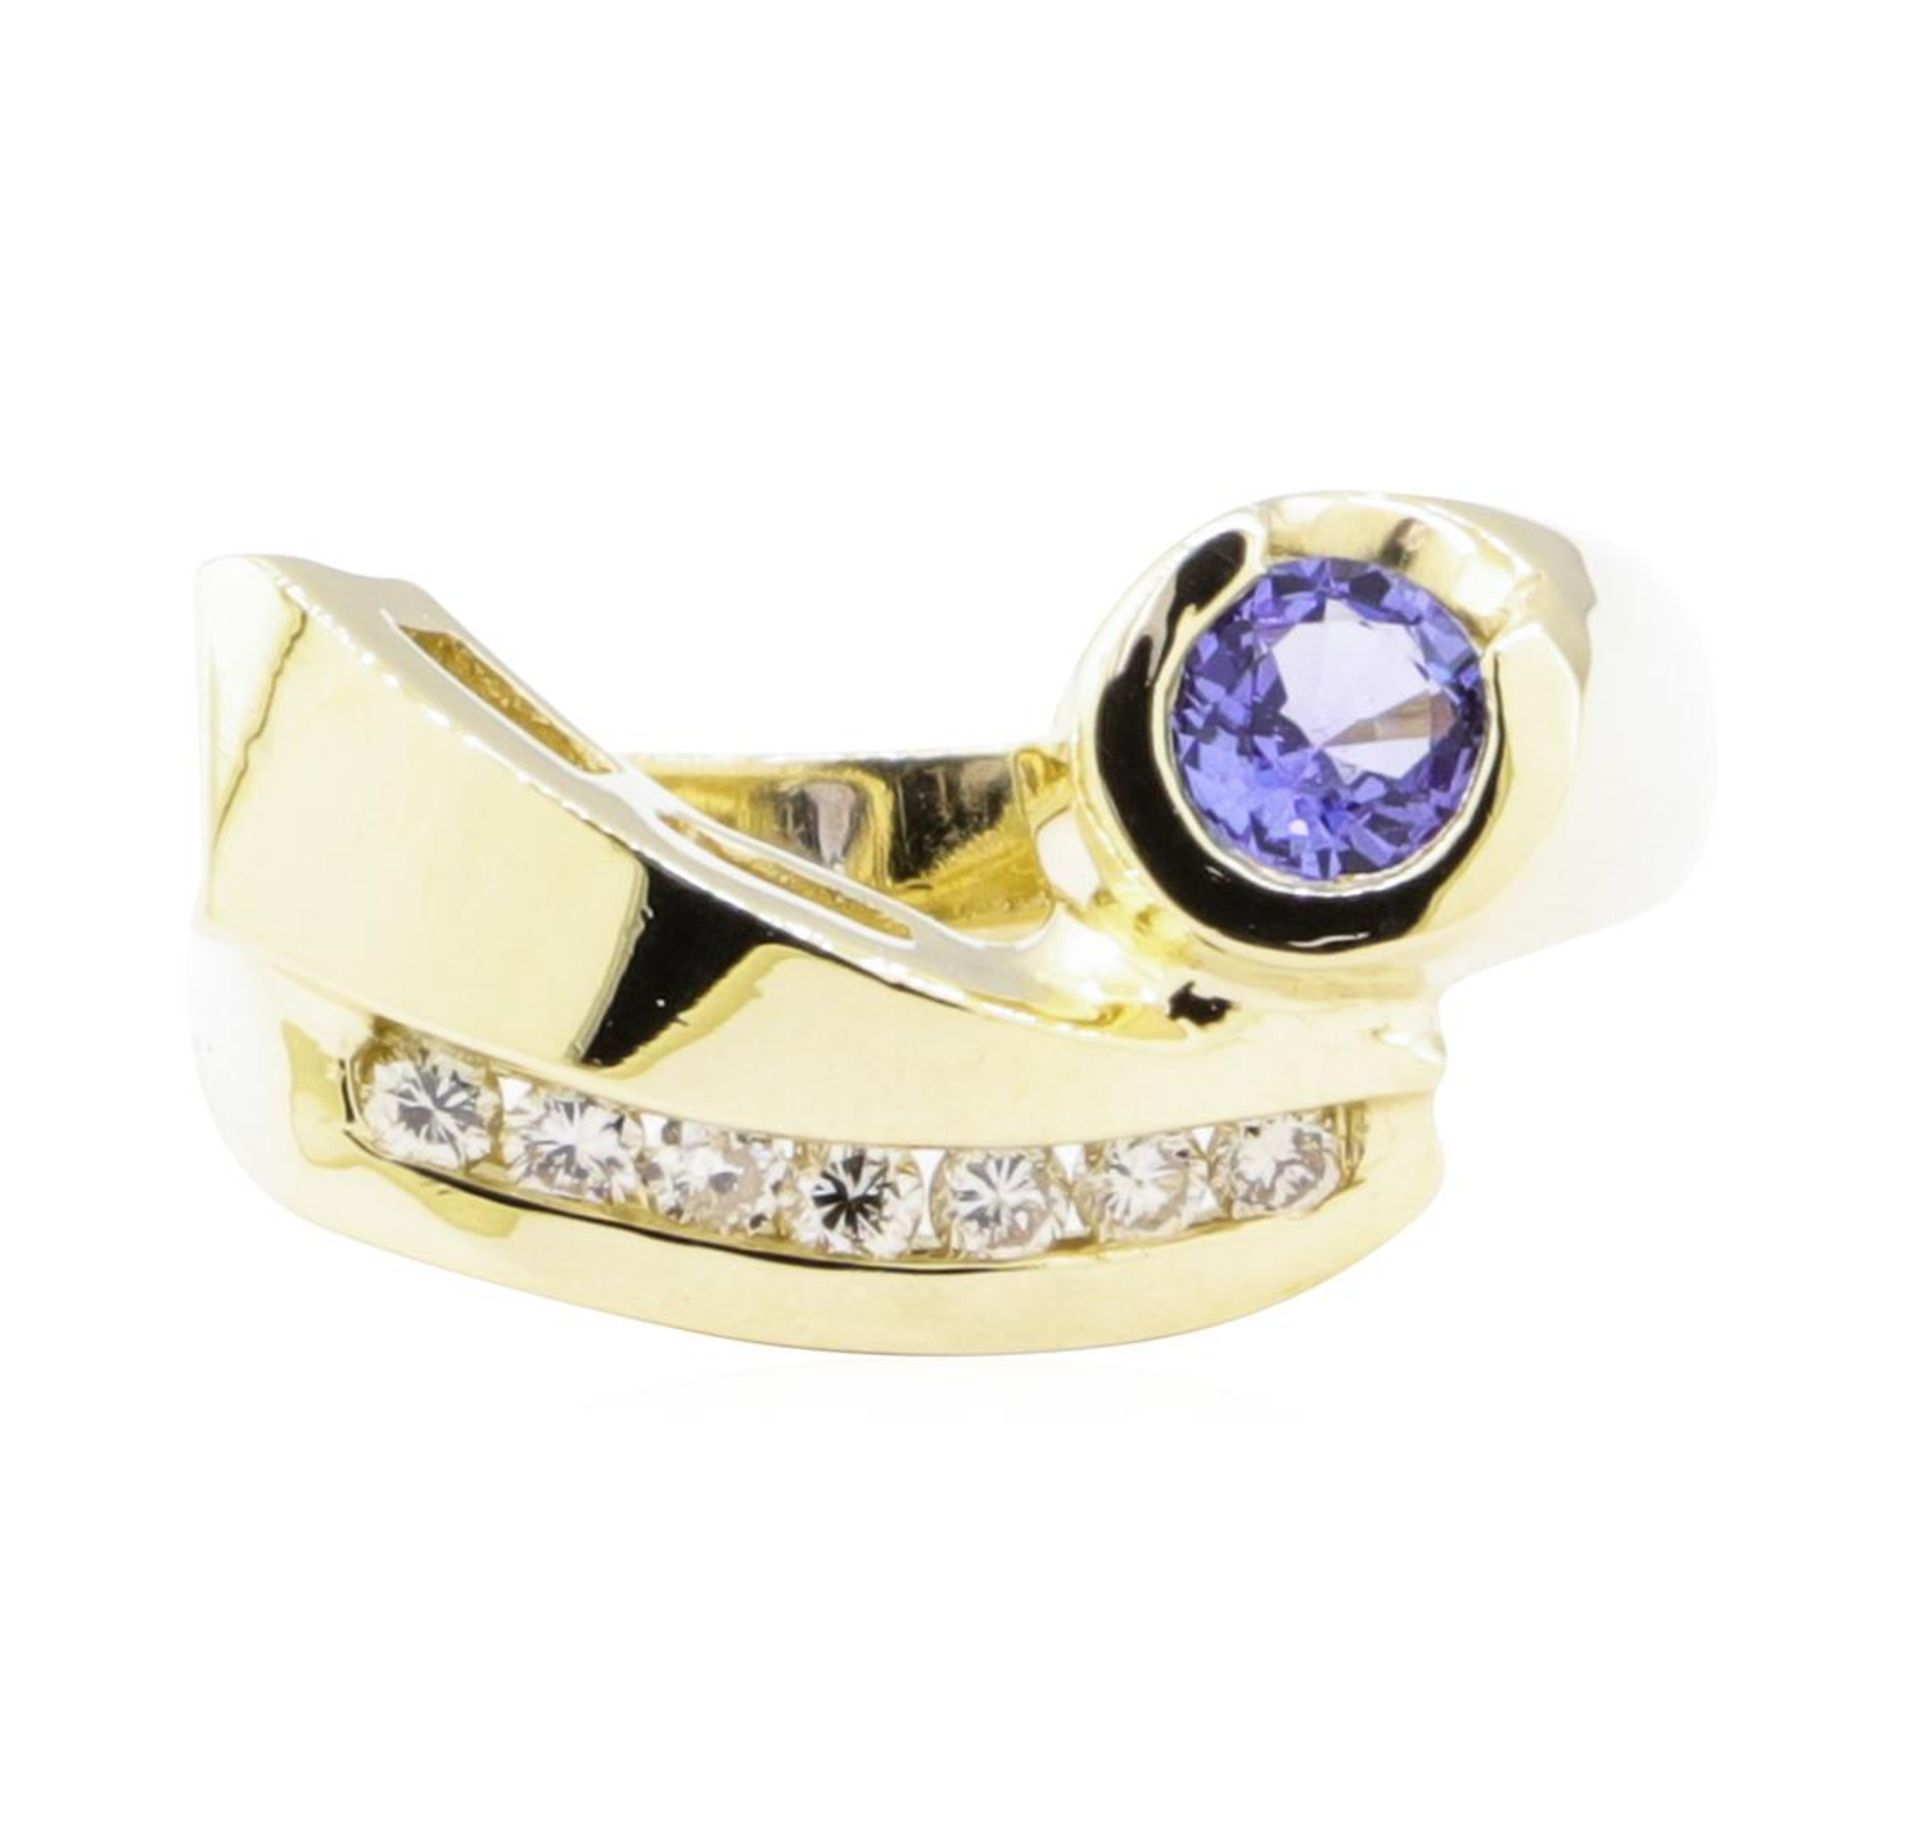 0.55ctw Blue Sapphire and Diamond Ring - 14KT Yellow Gold - Image 2 of 4